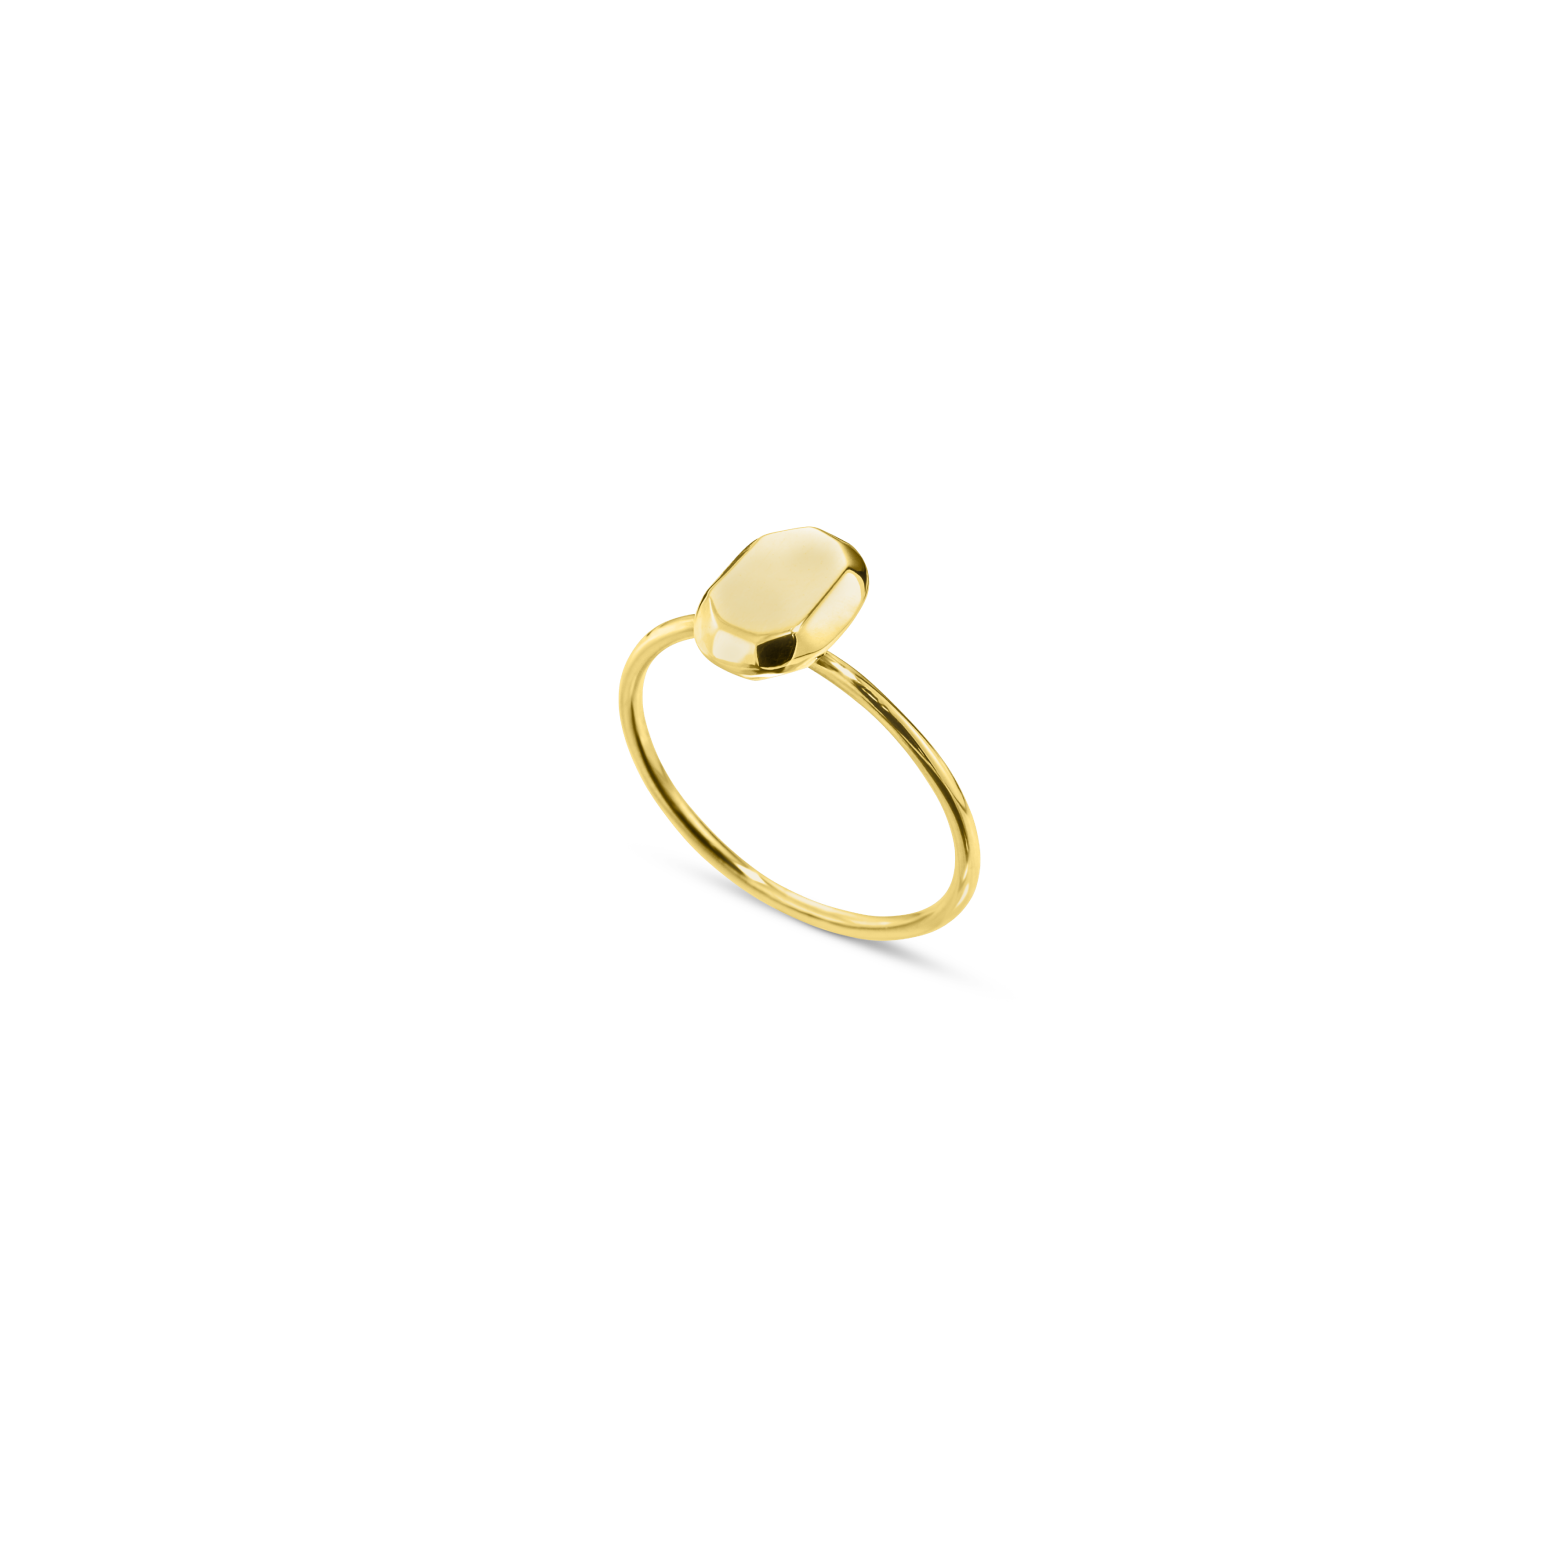 The Mini Oval Ring